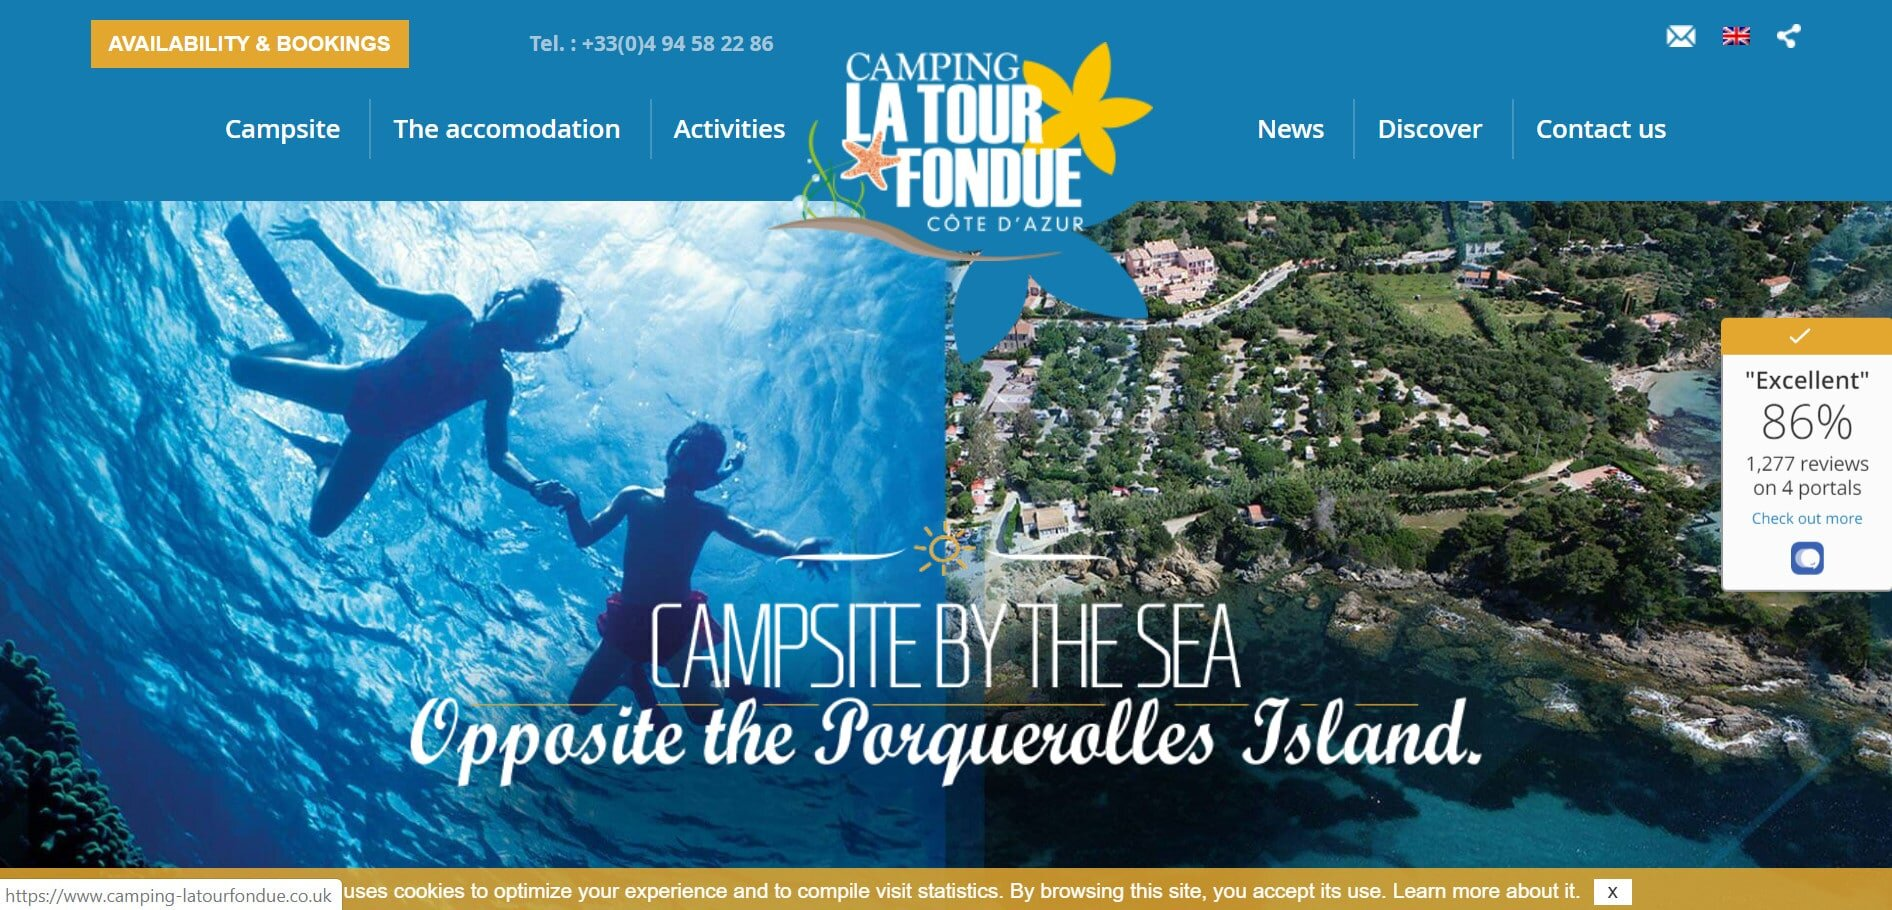 La Tour Fondue is a top rated south France camping site next to the sea.